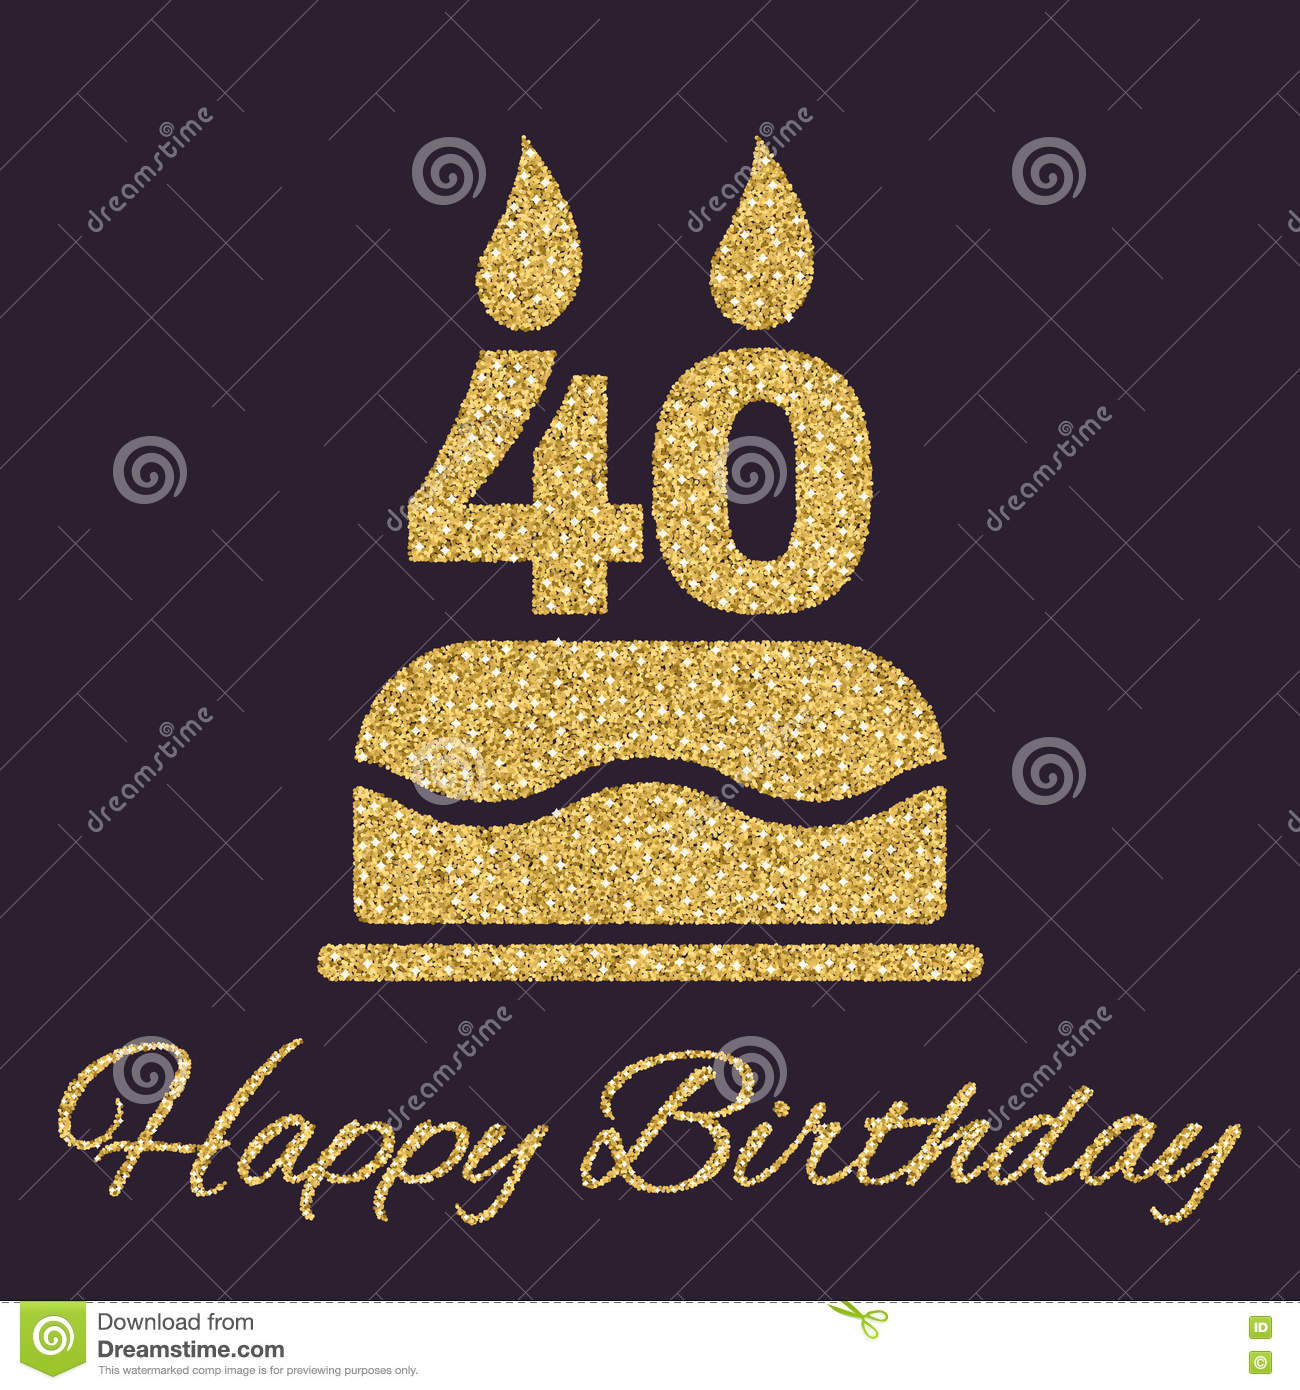 The Birthday Cake With Candles In Form Of Number 40 Icon Symbol Gold Sparkles And Glitter Vector Illustration